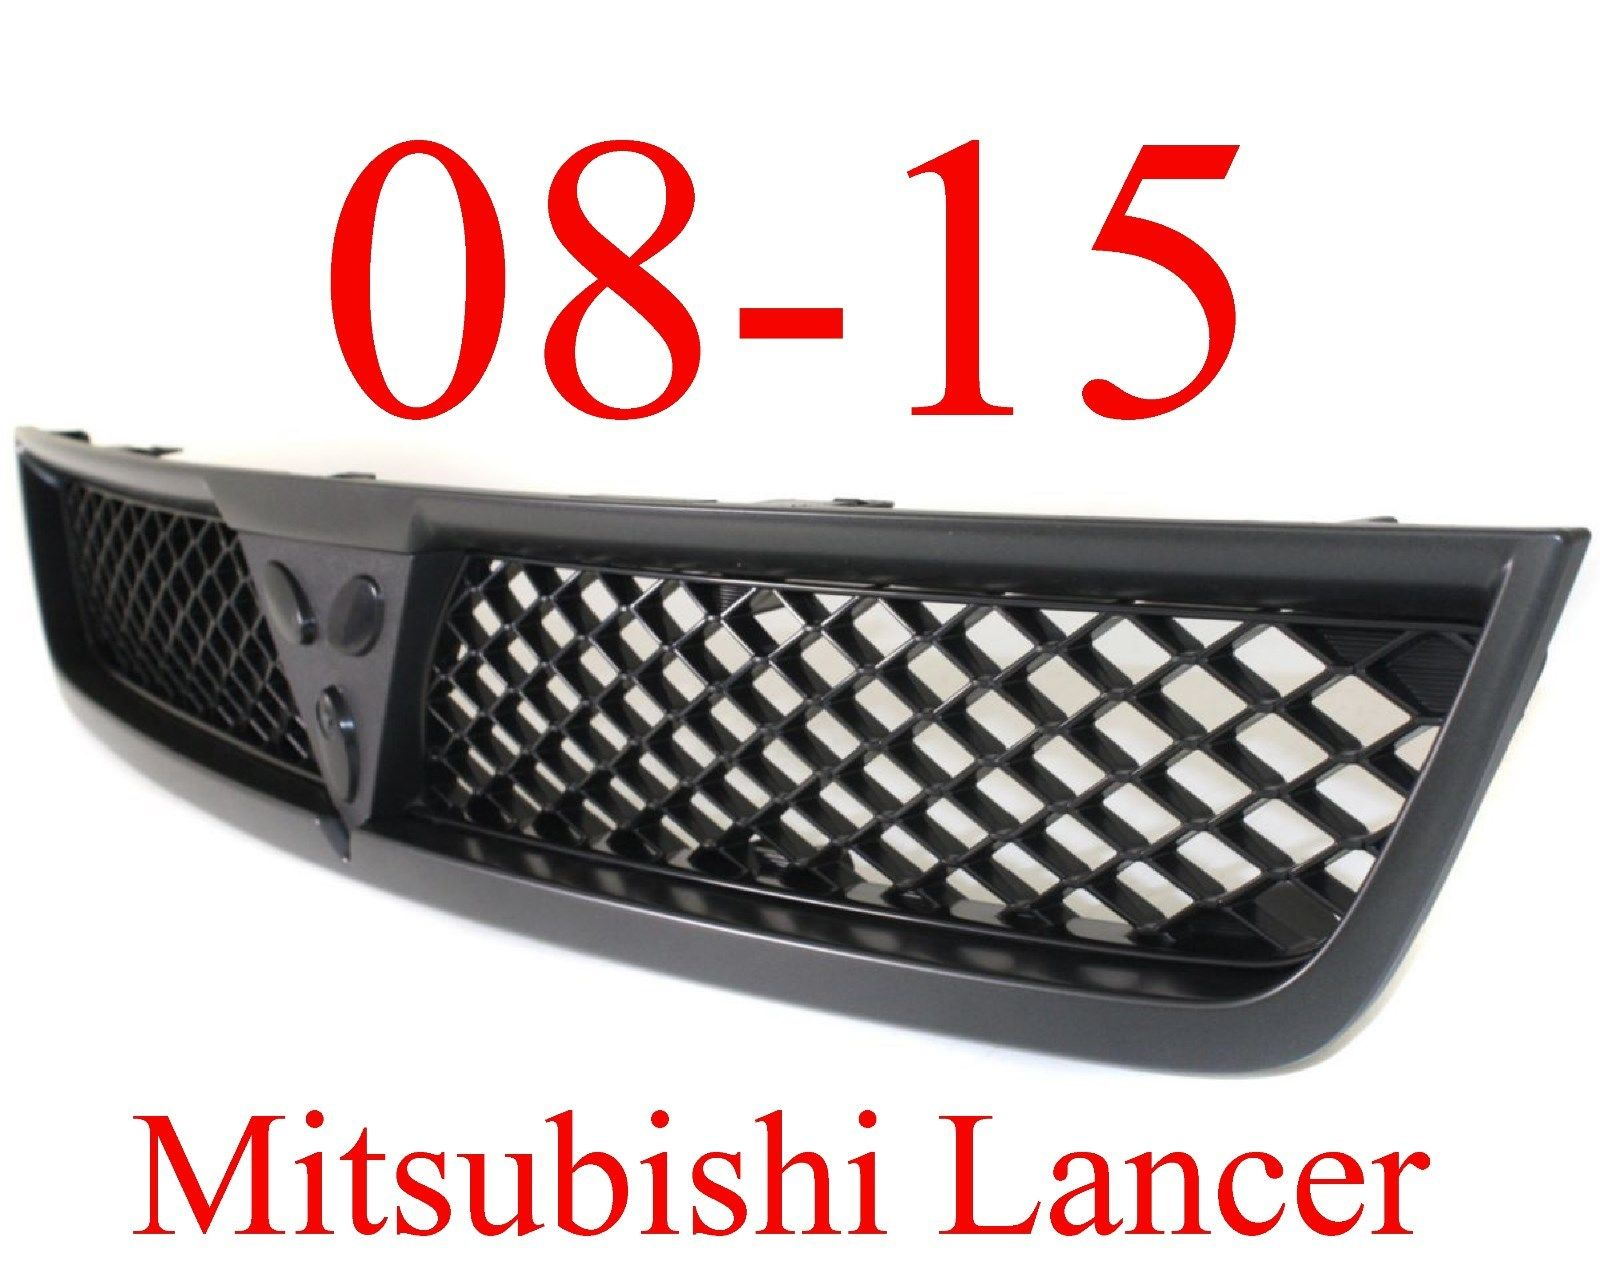 08-15 Mitsubishi Lancer Upper Grill Black